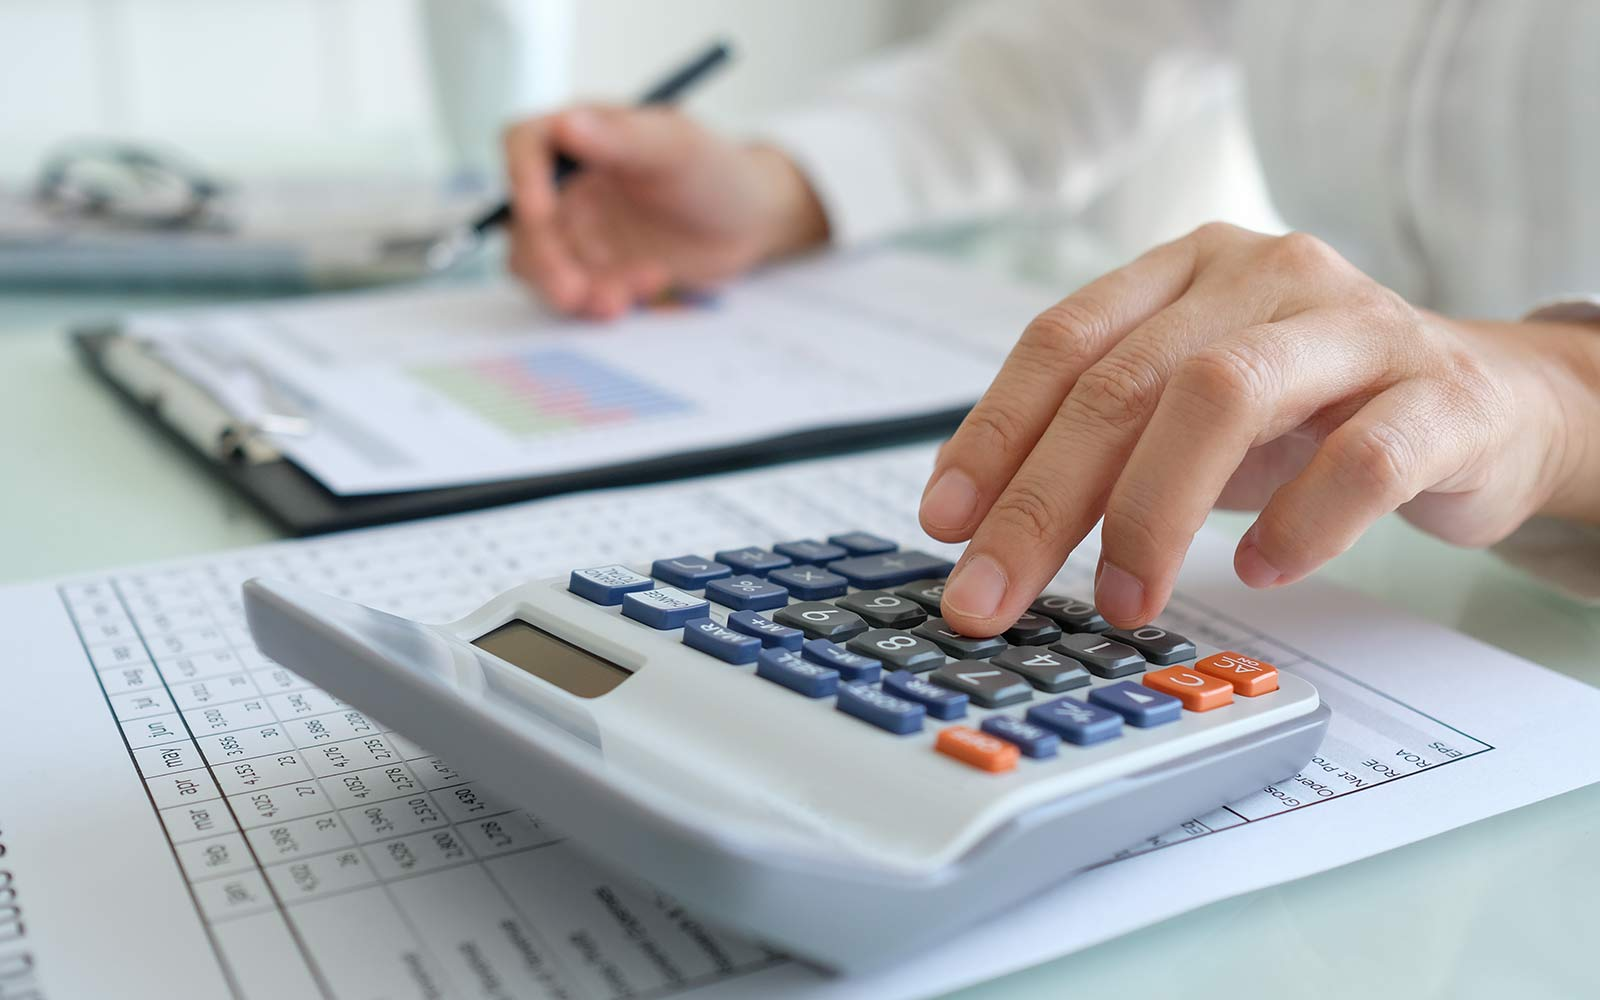 entrepreneur doing business accounting